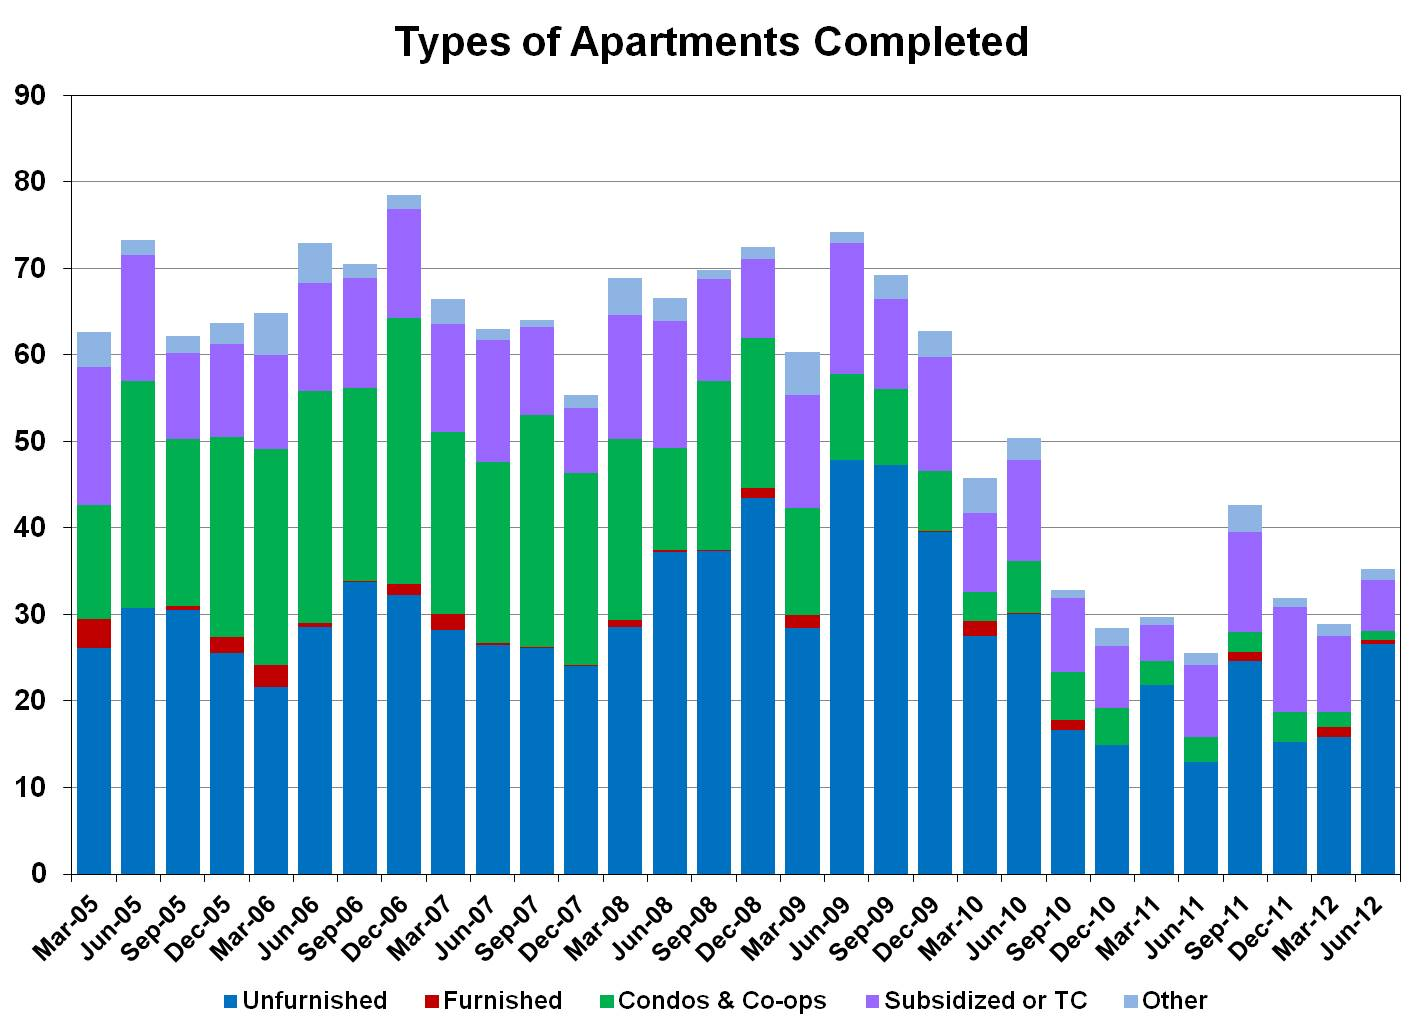 Apartment Building Investment since 2005 by type